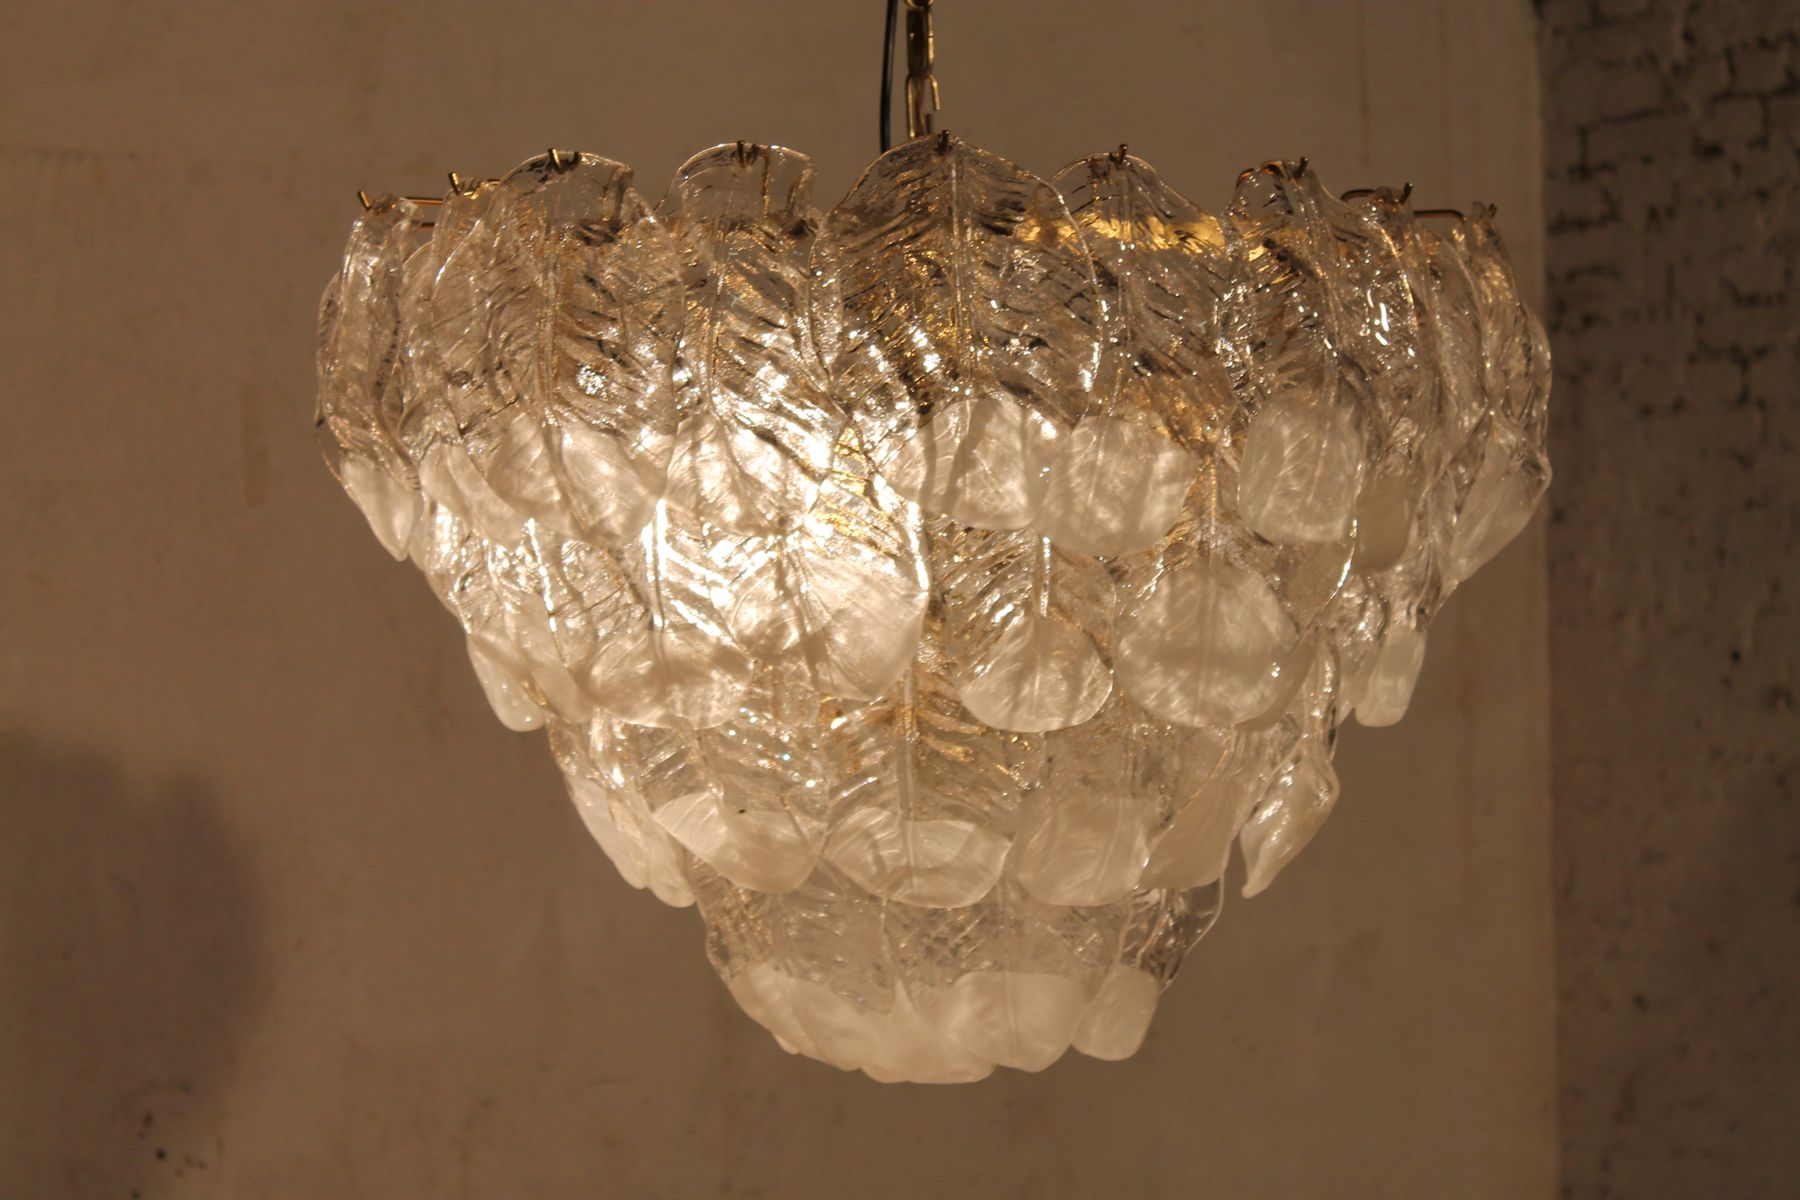 Large glass leaf chandelier from mazzega 1960s for sale at pamono price per piece arubaitofo Choice Image